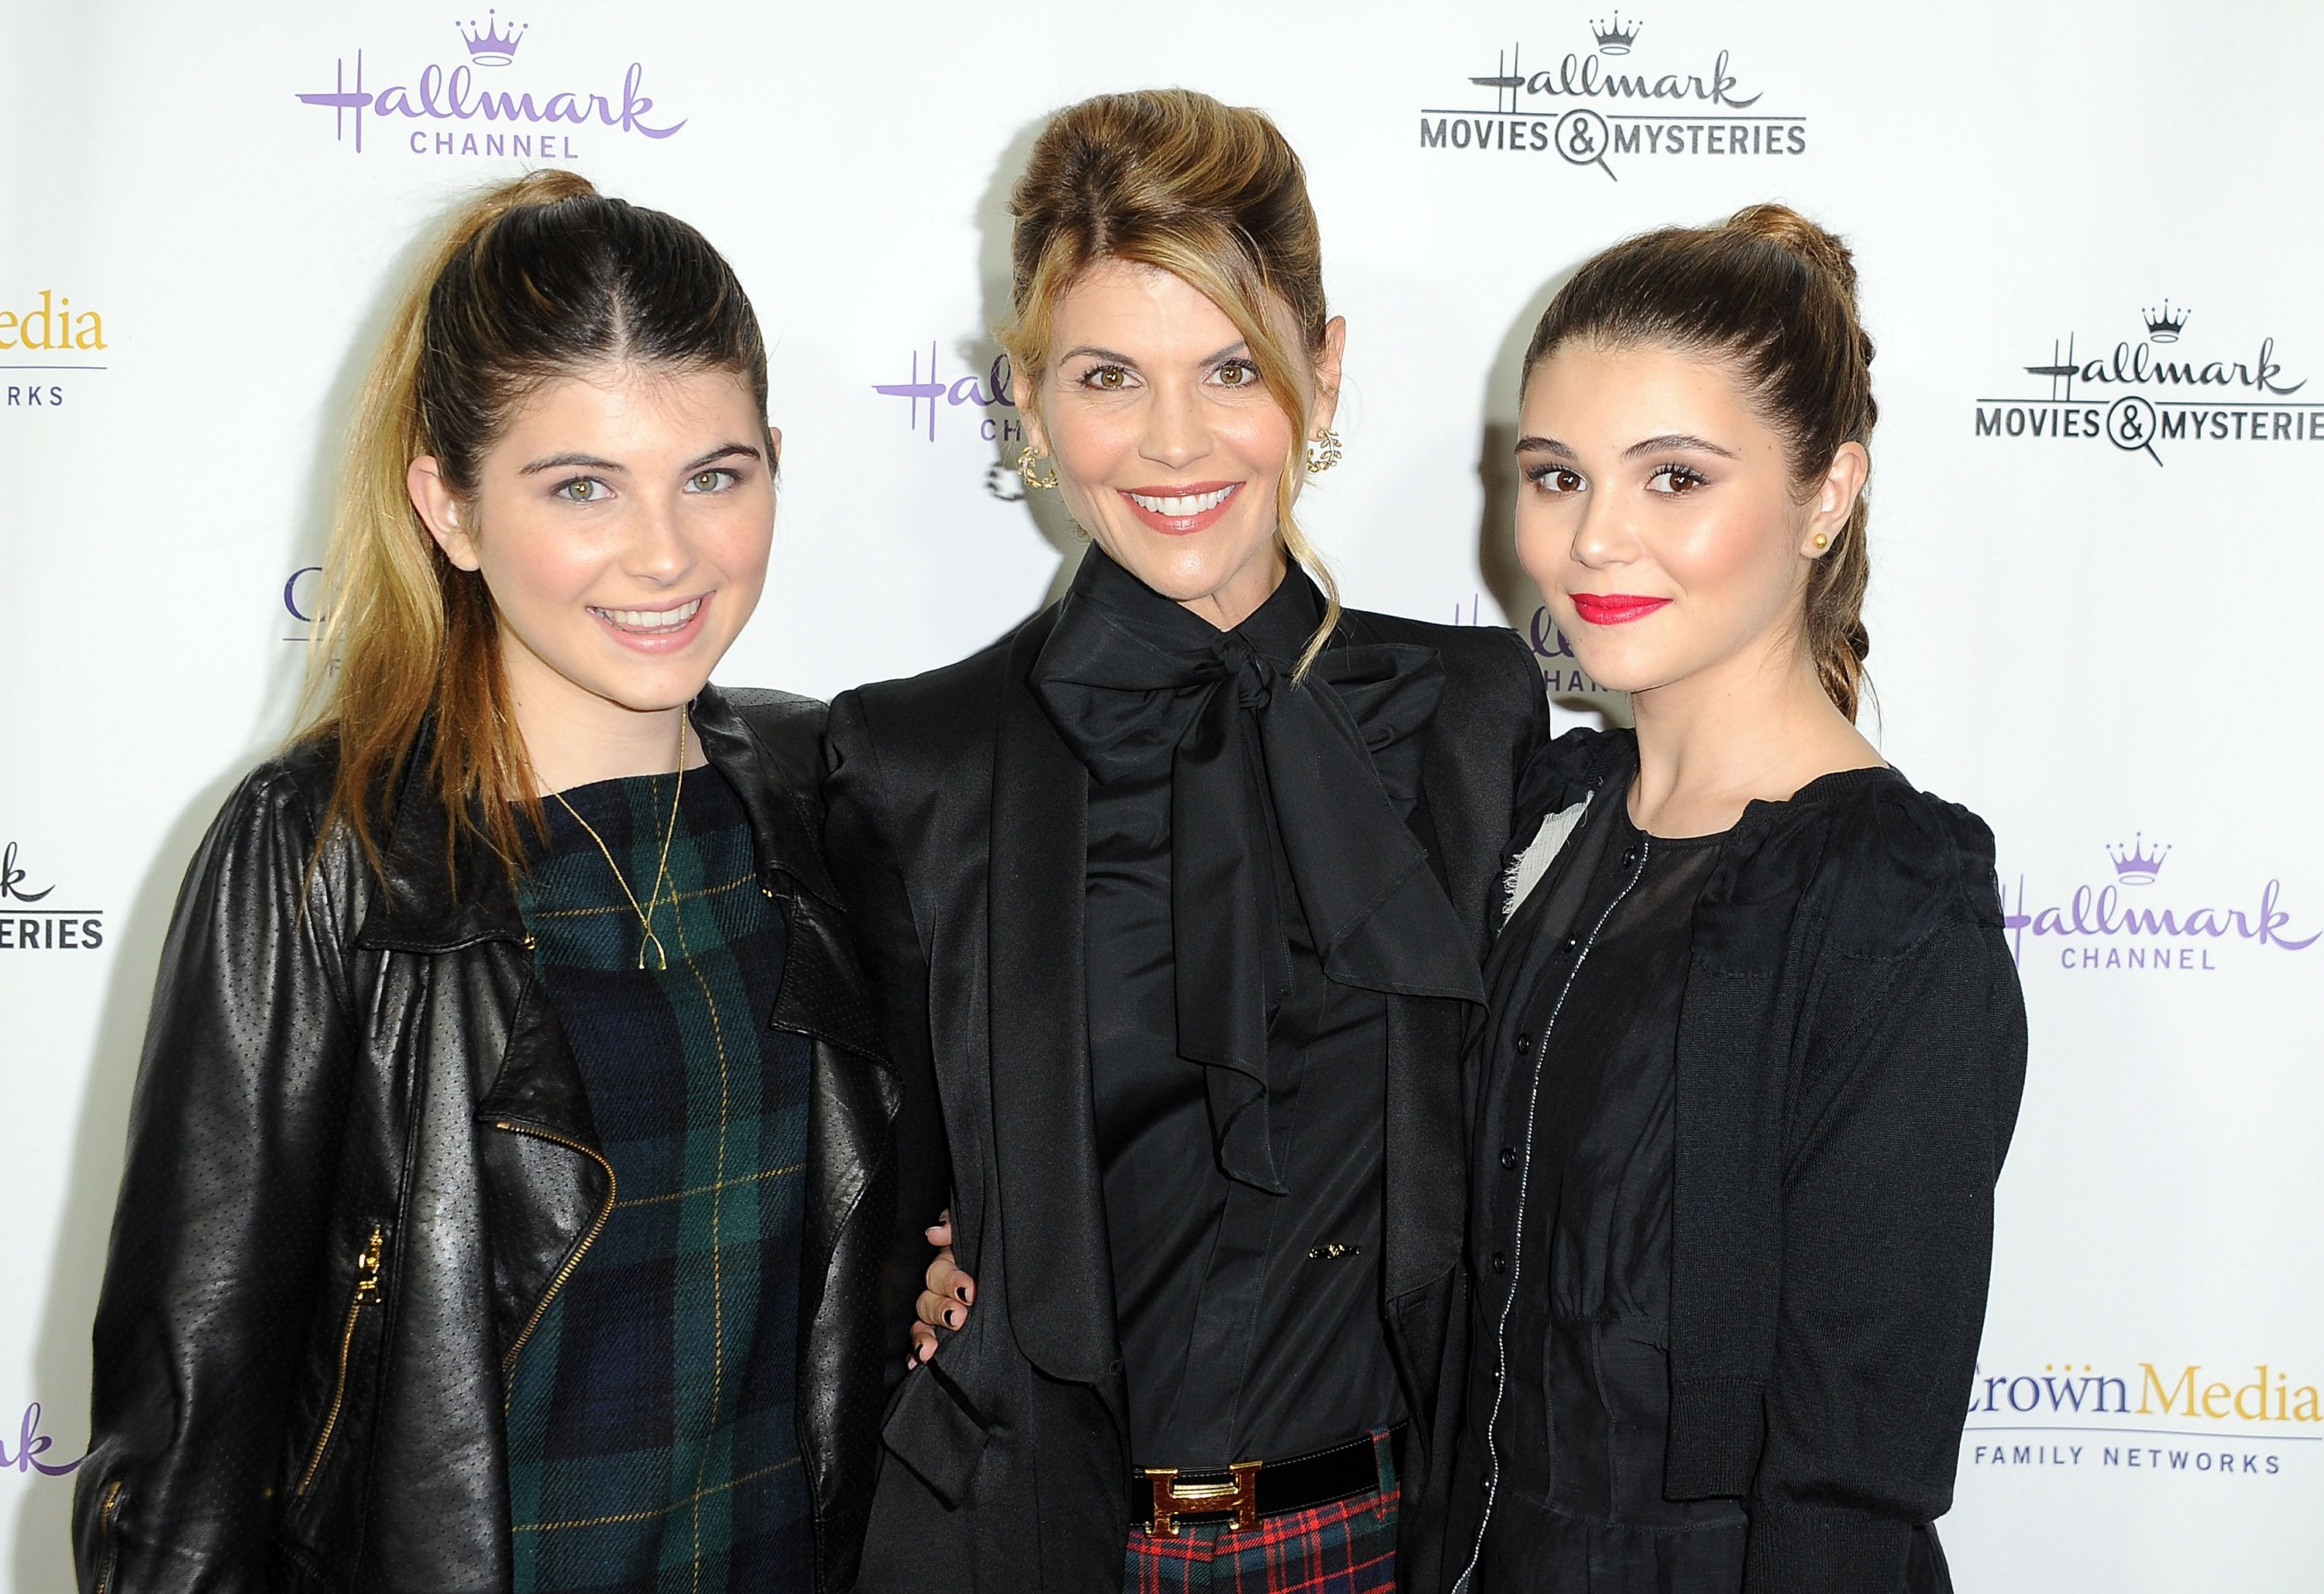 """Isabella Giannulli, Lori Loughlin, and Olivia Giannulli at Hallmark Channel's annual holiday event premiere screening of """"Northpole"""" on November 4, 2014, in Los Angeles, California 